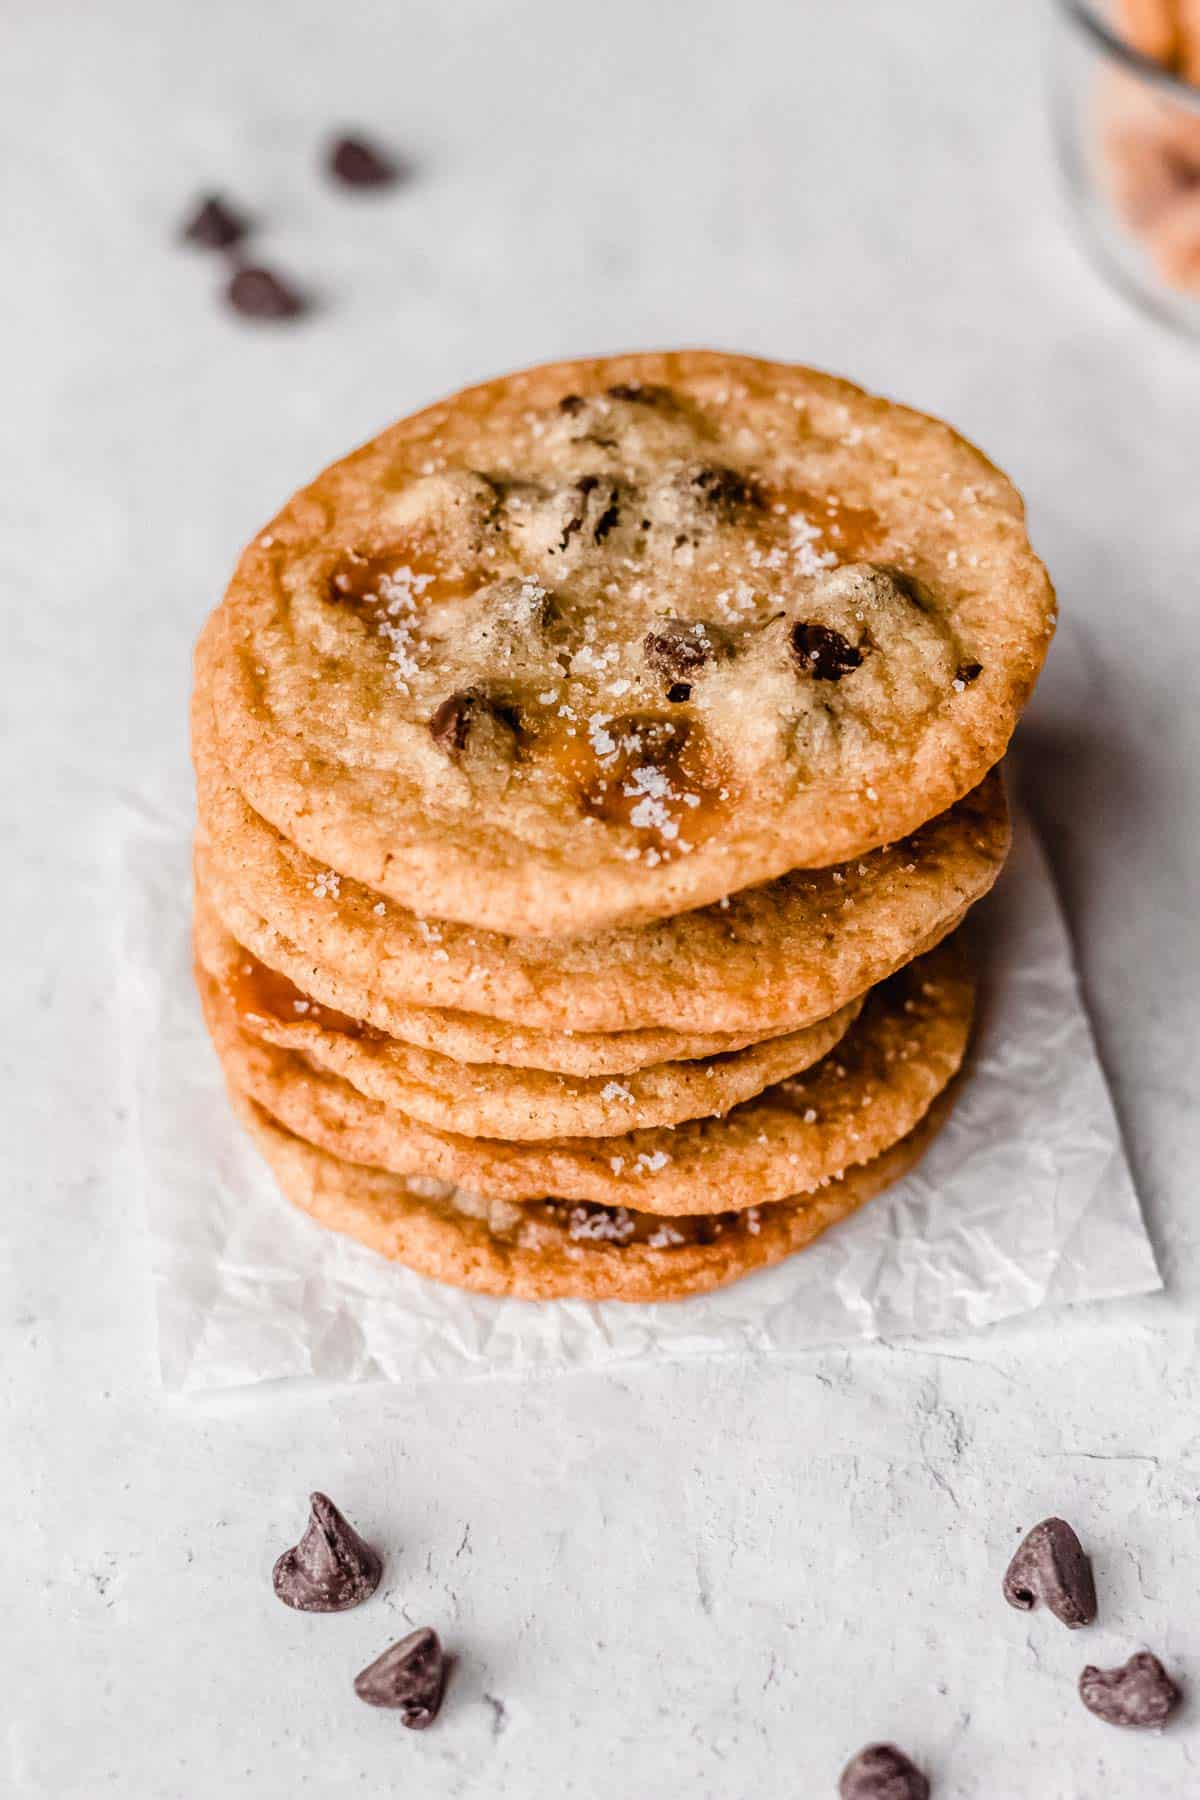 A stack of 5 salted caramel chocolate chip cookies on a white background with chocolate chips around it